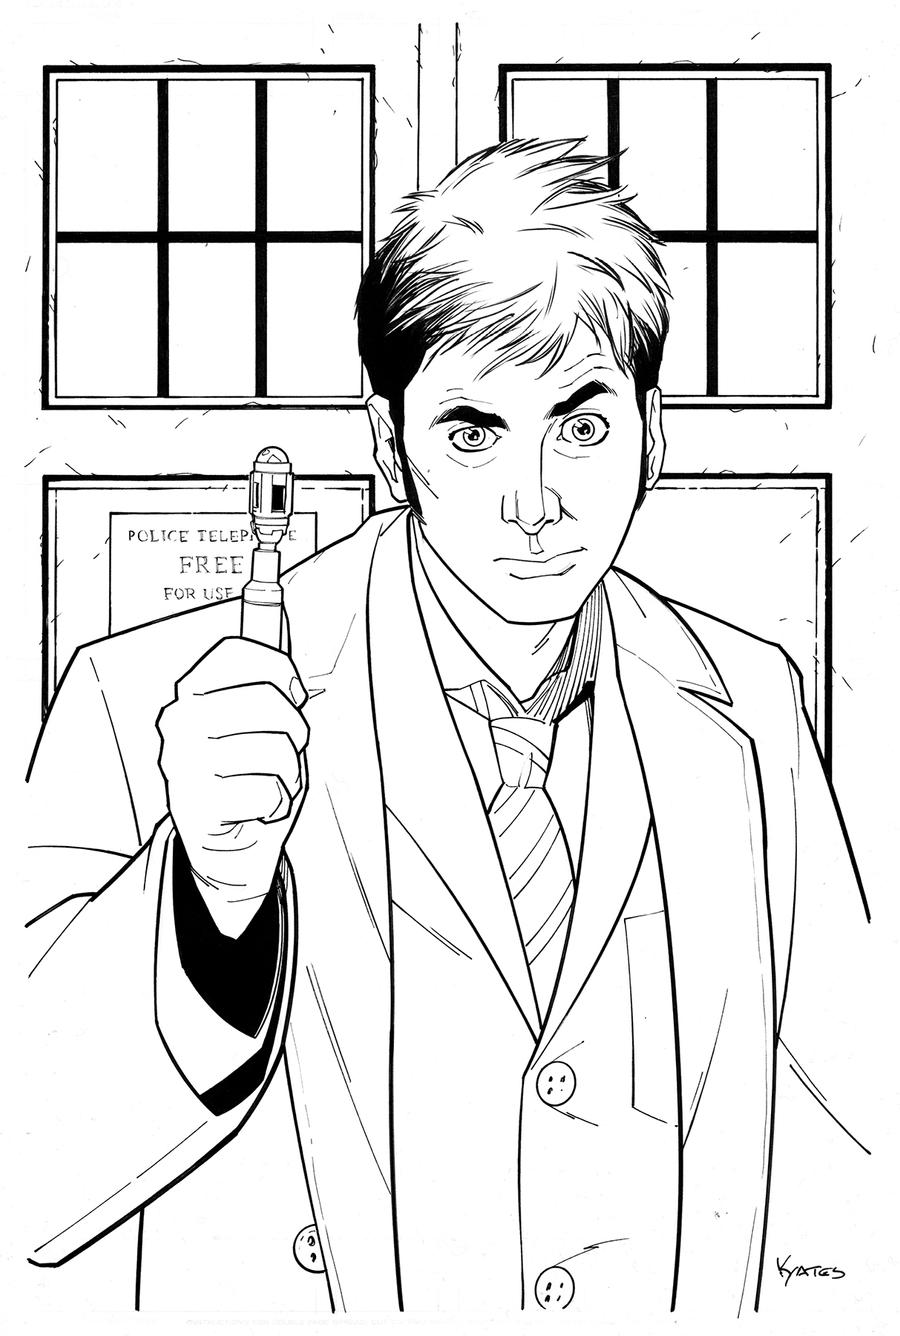 10th doctor who by kellyyates on deviantart for Dr who coloring pages